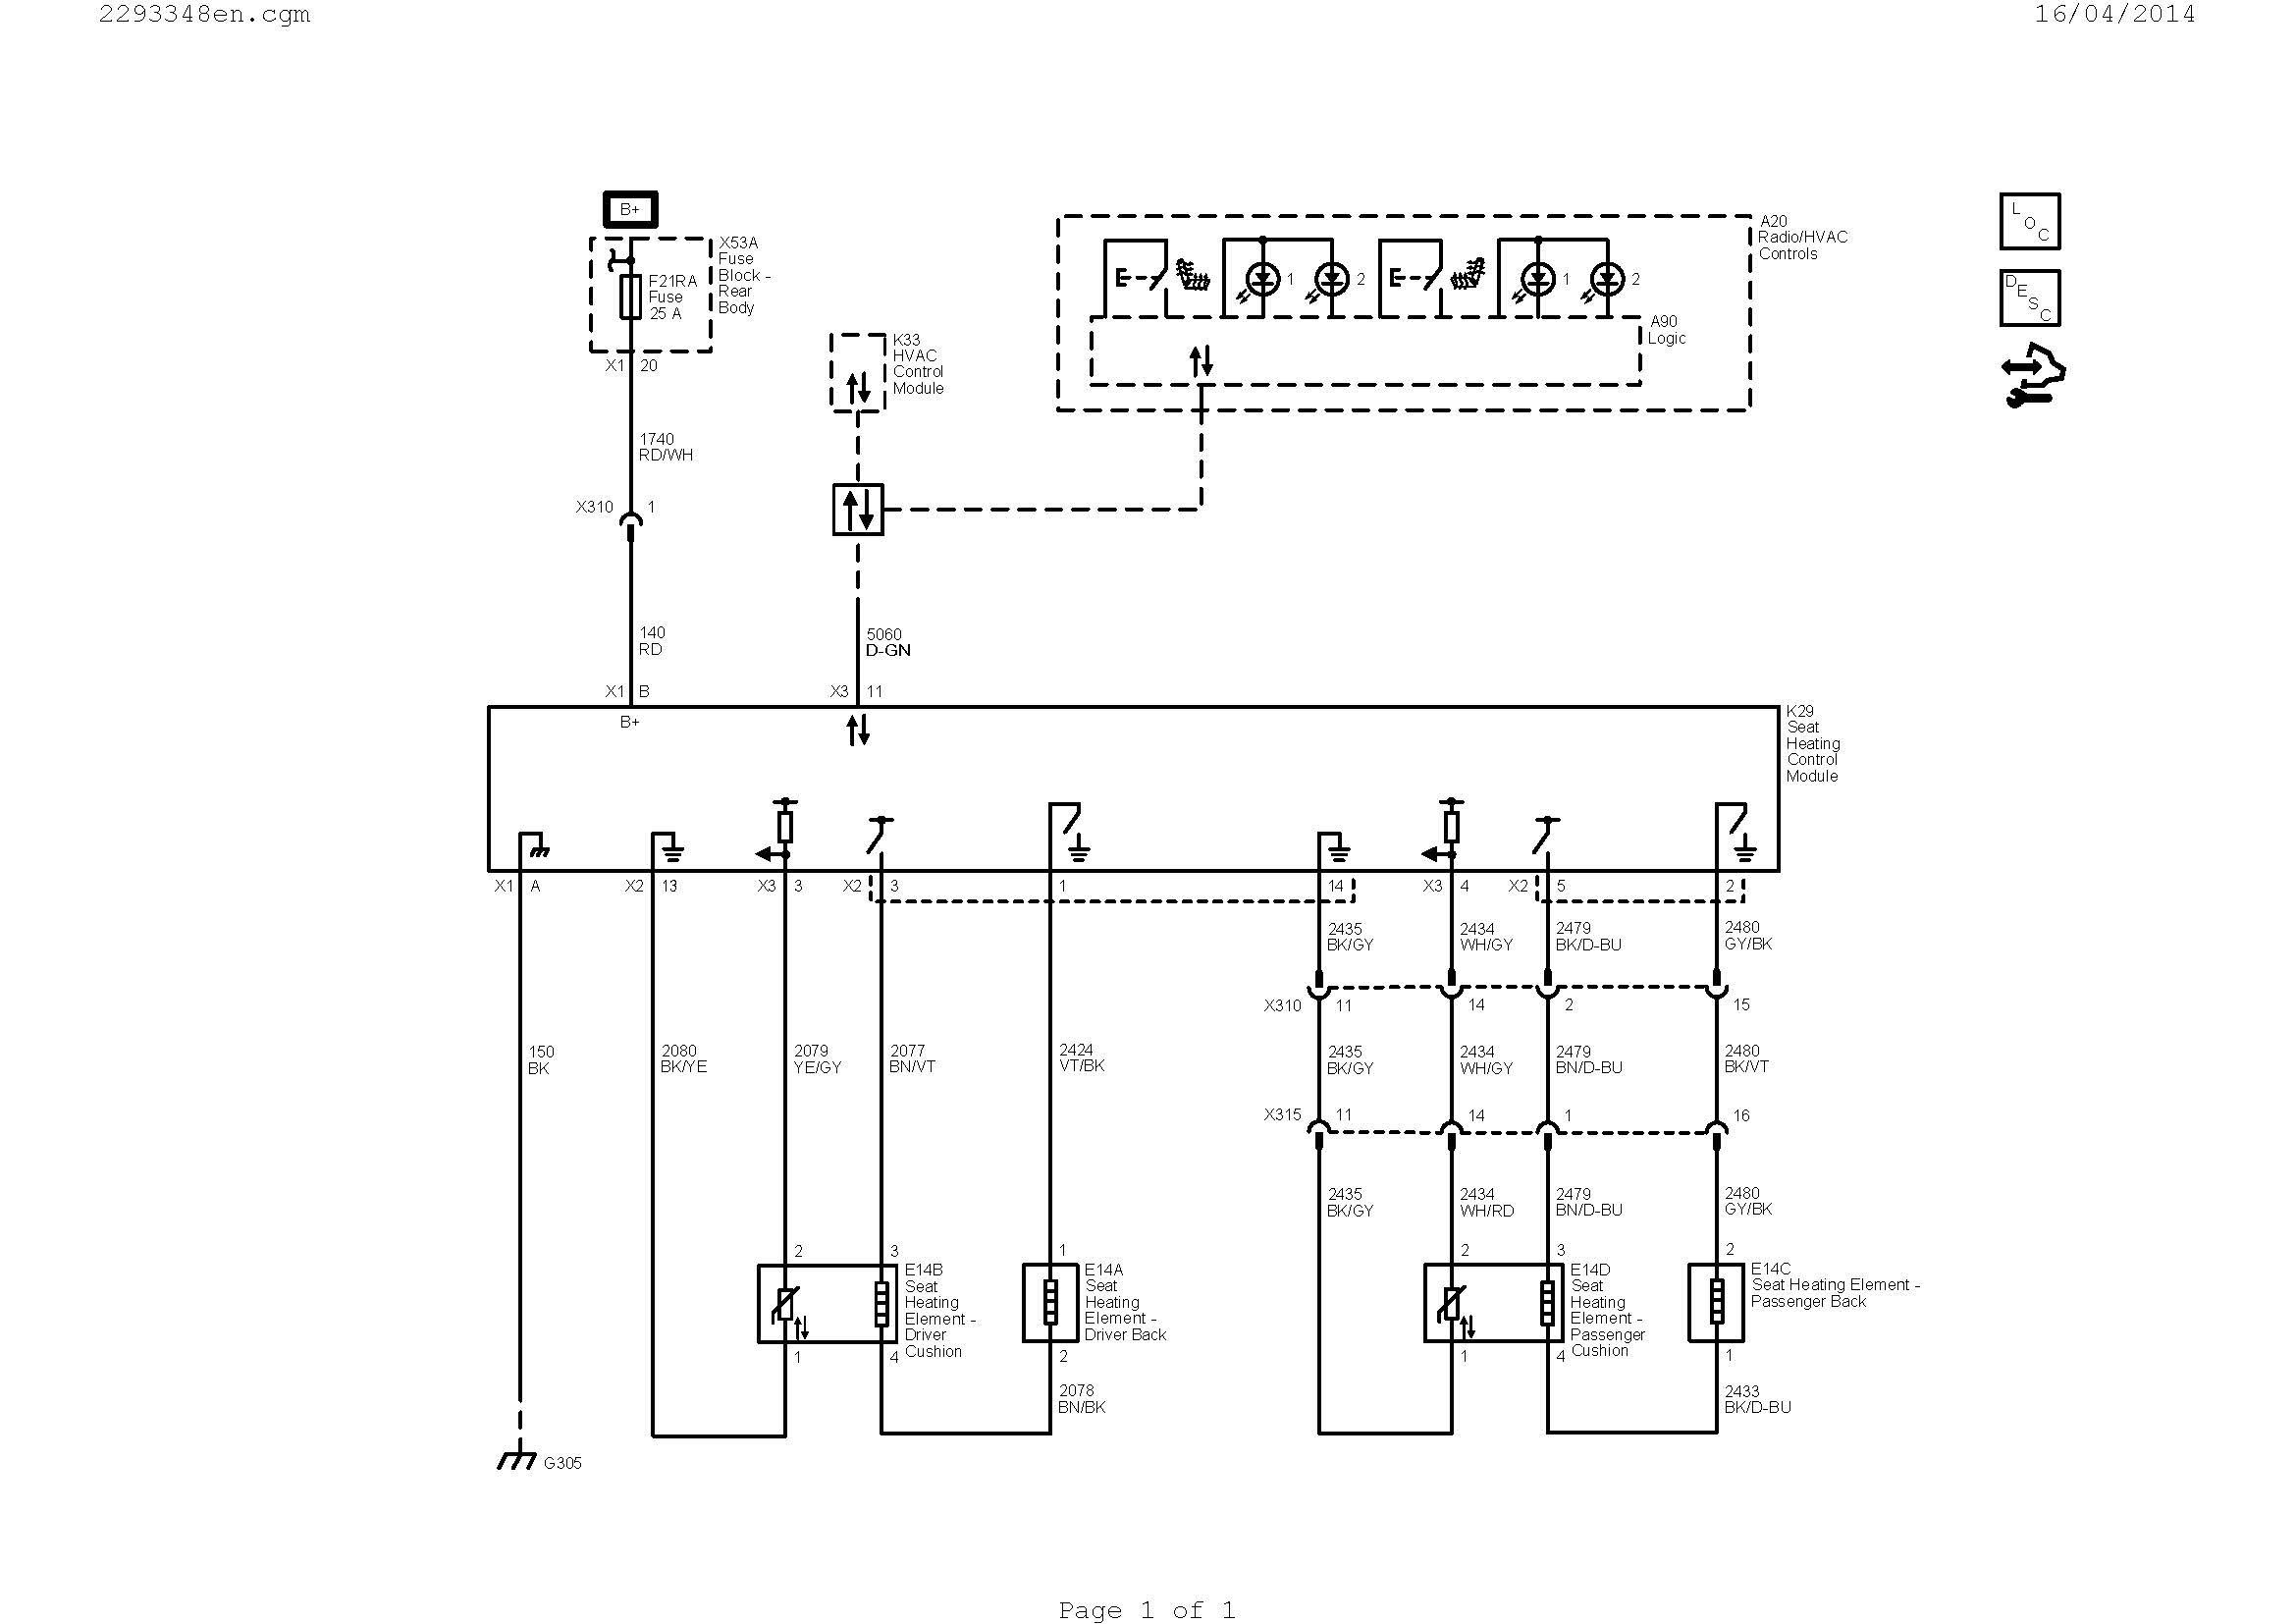 kohler engine wiring diagram Collection-Wiring Diagram for Kohler Engine Valid Mechanical Engineering Diagrams Hvac Diagram Best Hvac Diagram 0d 9-m